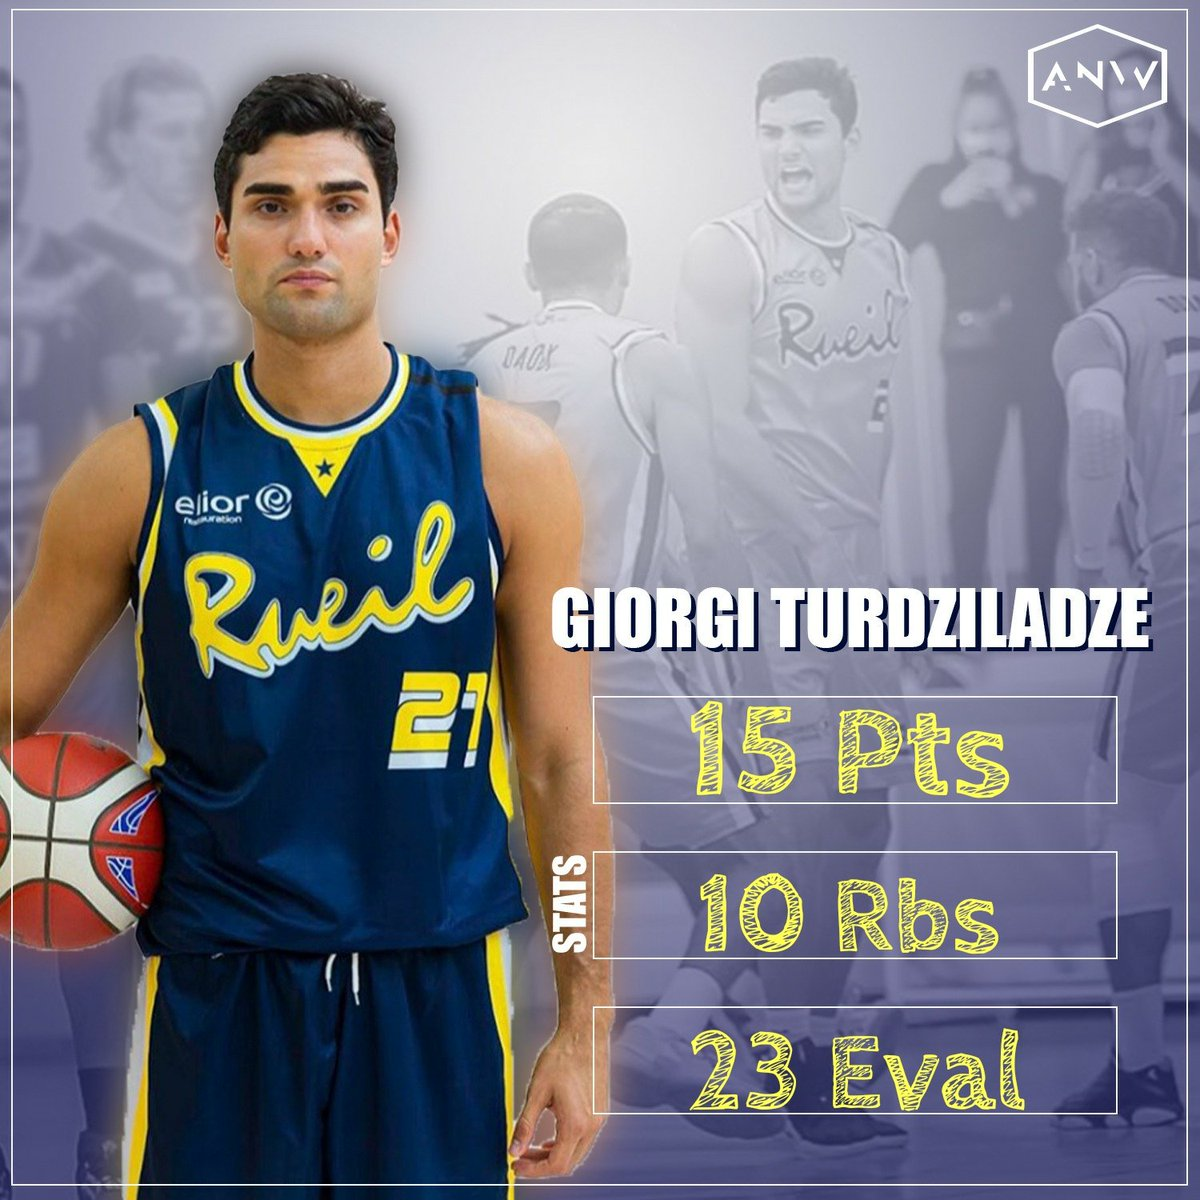 🔥 strong #doubledouble & #efficient perf by #giorgiturdzilaze who added 3blks. One more win #athome for @RacBasket in #nm1  @geobasketball1 @georgianbasket #TheNewWay https://t.co/paomS0DtGj